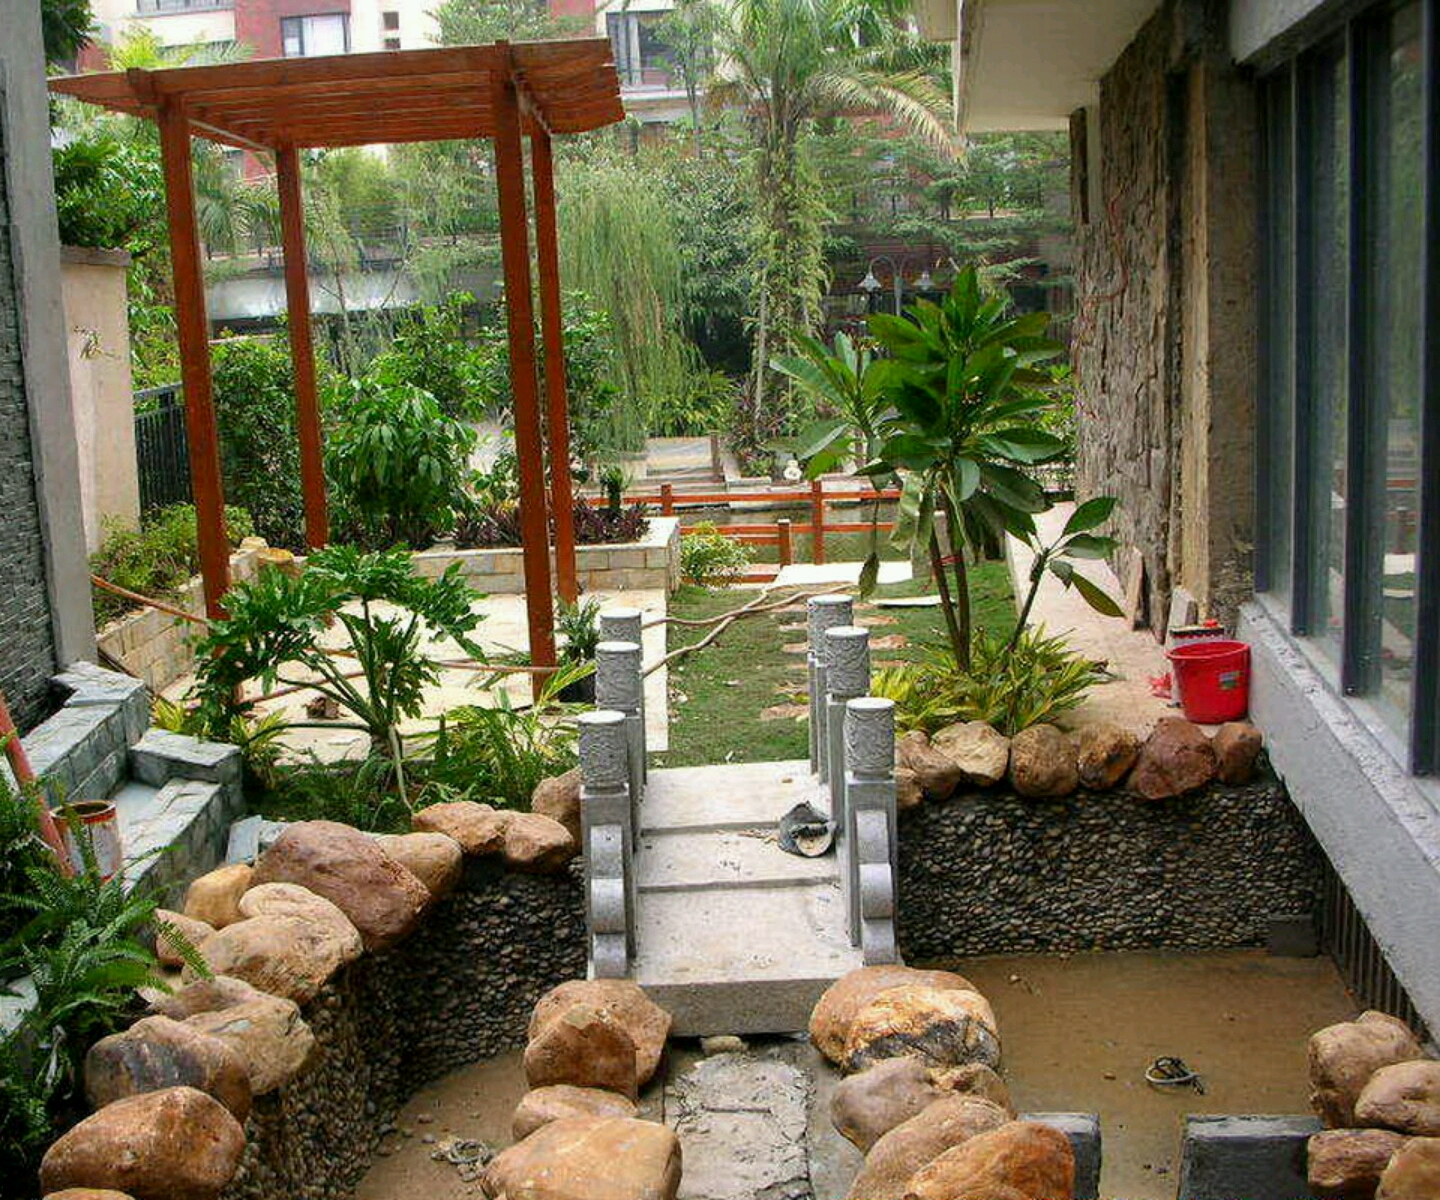 Http Shoaibnzm Home Design Blogspot Com 2012 12 Beautiful Home Gardens Designs Ideas Html